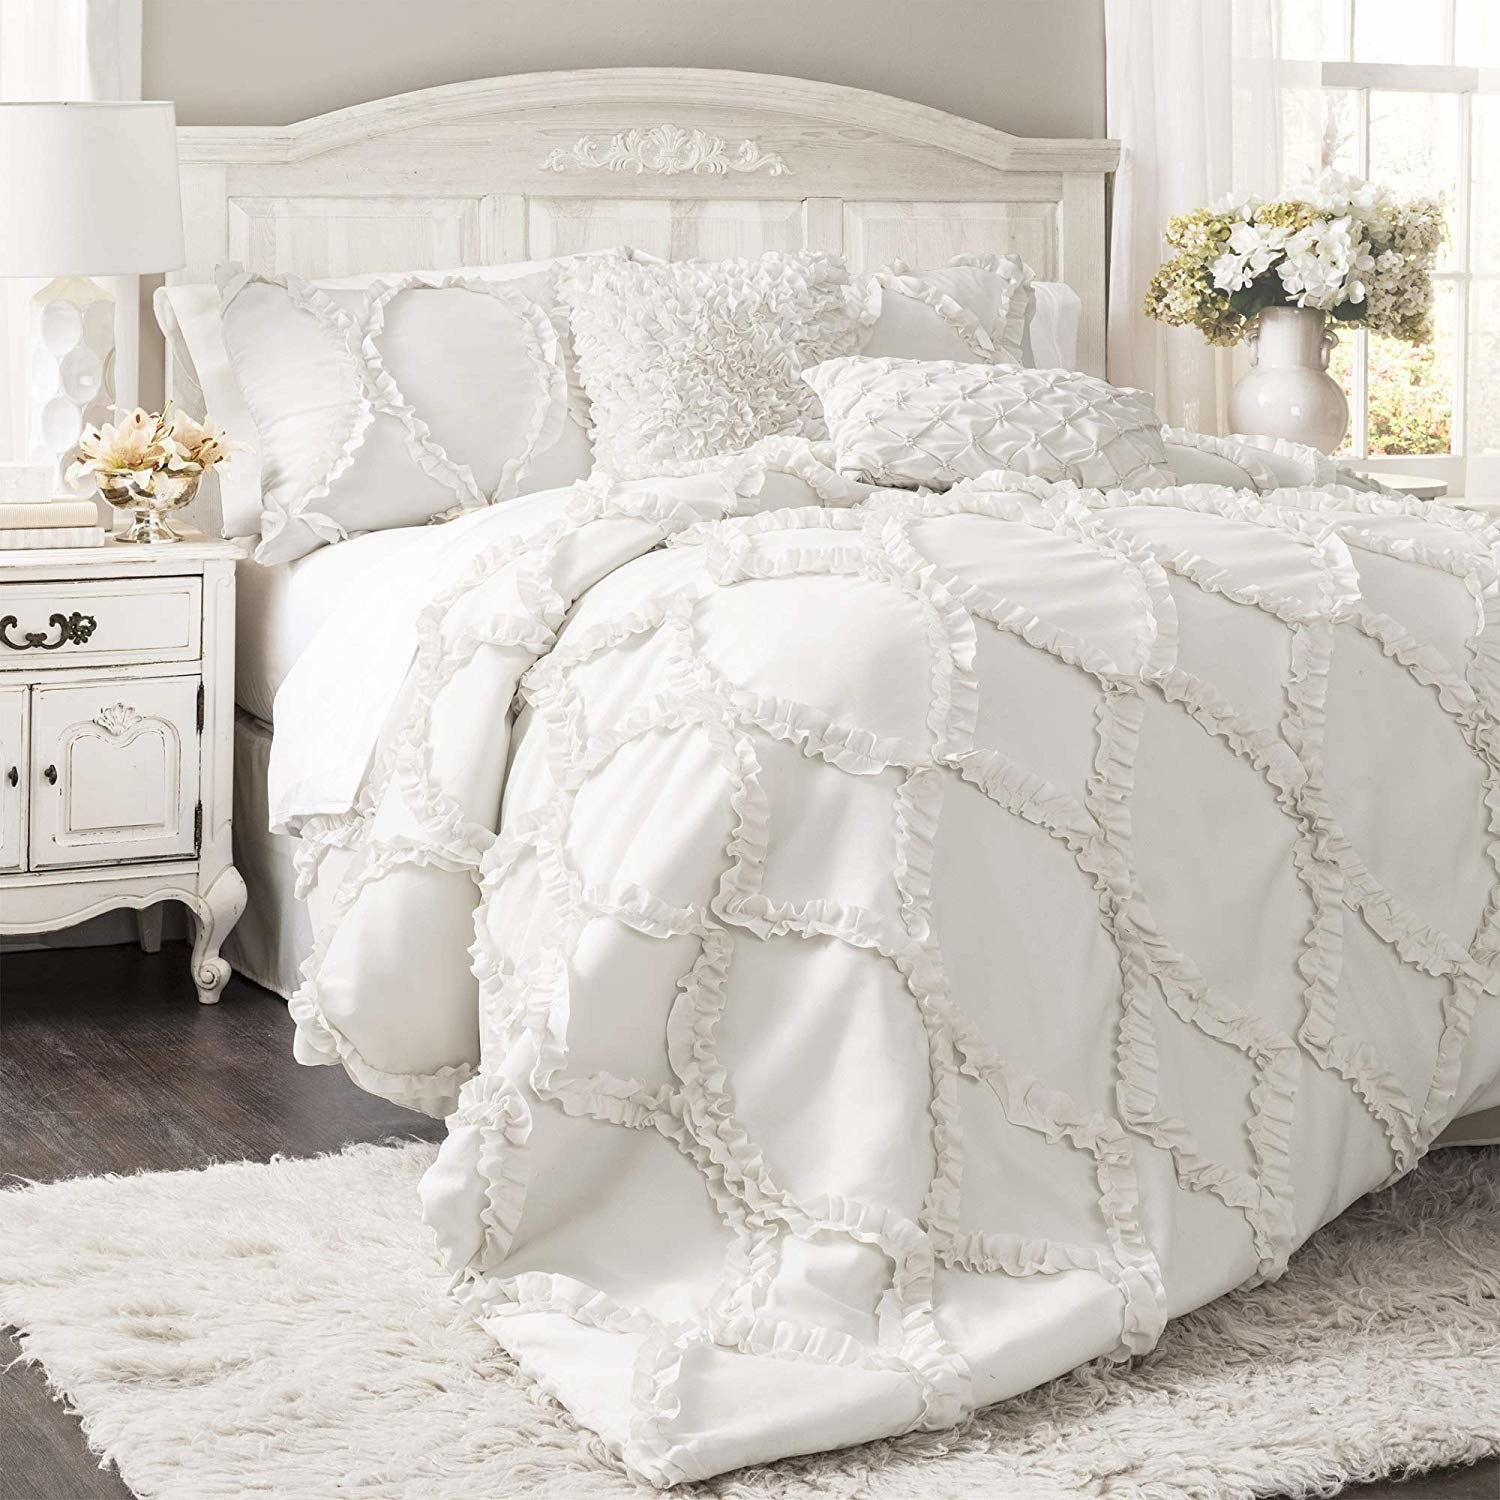 27 Pieces Of Bedding That Only Look Expensive